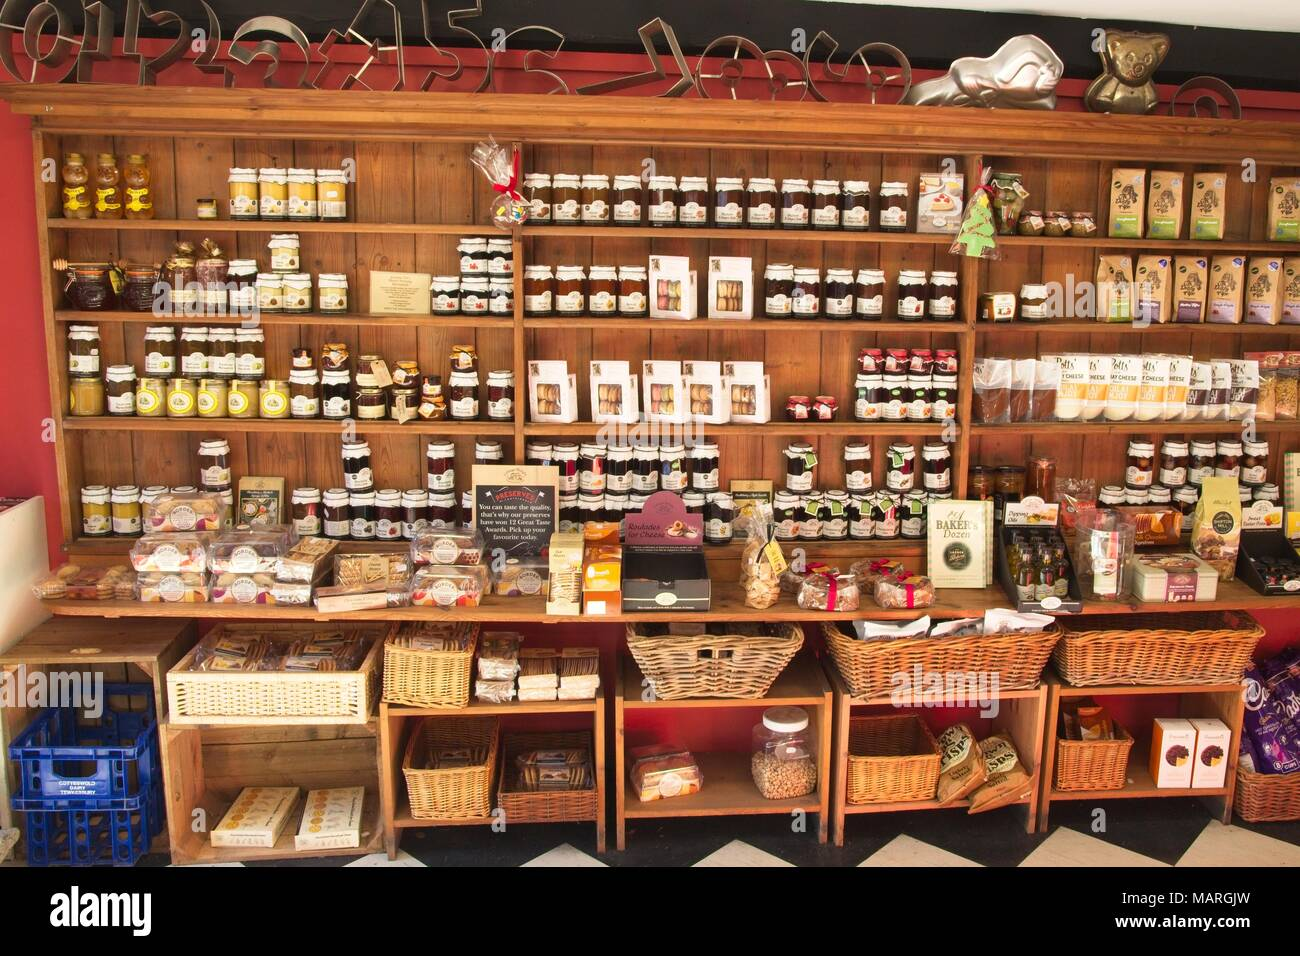 Wooden Shelving Inside A Shop Displaying Jams Chutneys And Biscuits